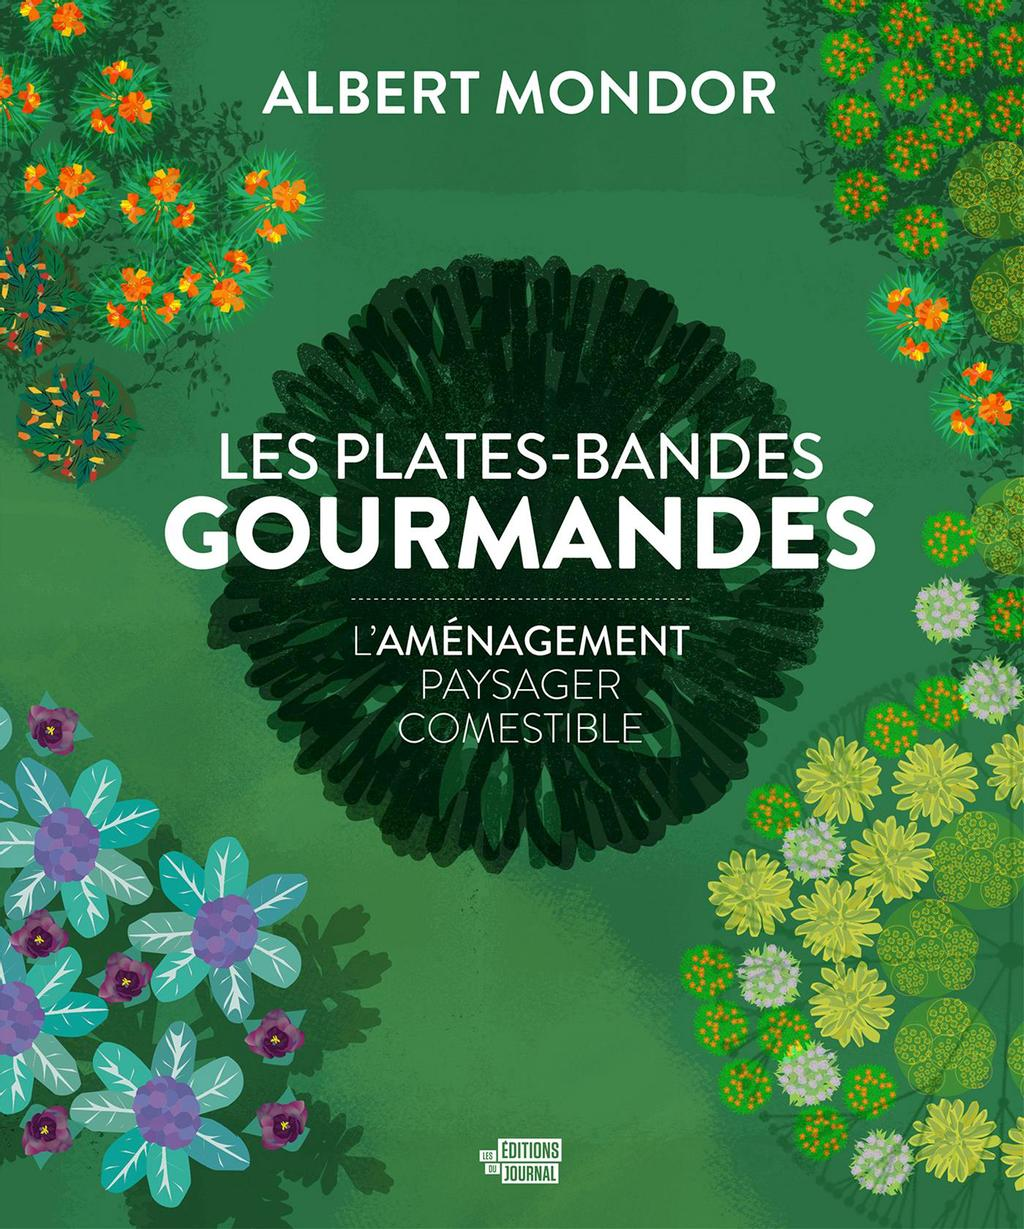 Albert Mondor, Les plates-bandes gourmandes, Les Éditions du Journal, 2019, 296 pages, 29,95$